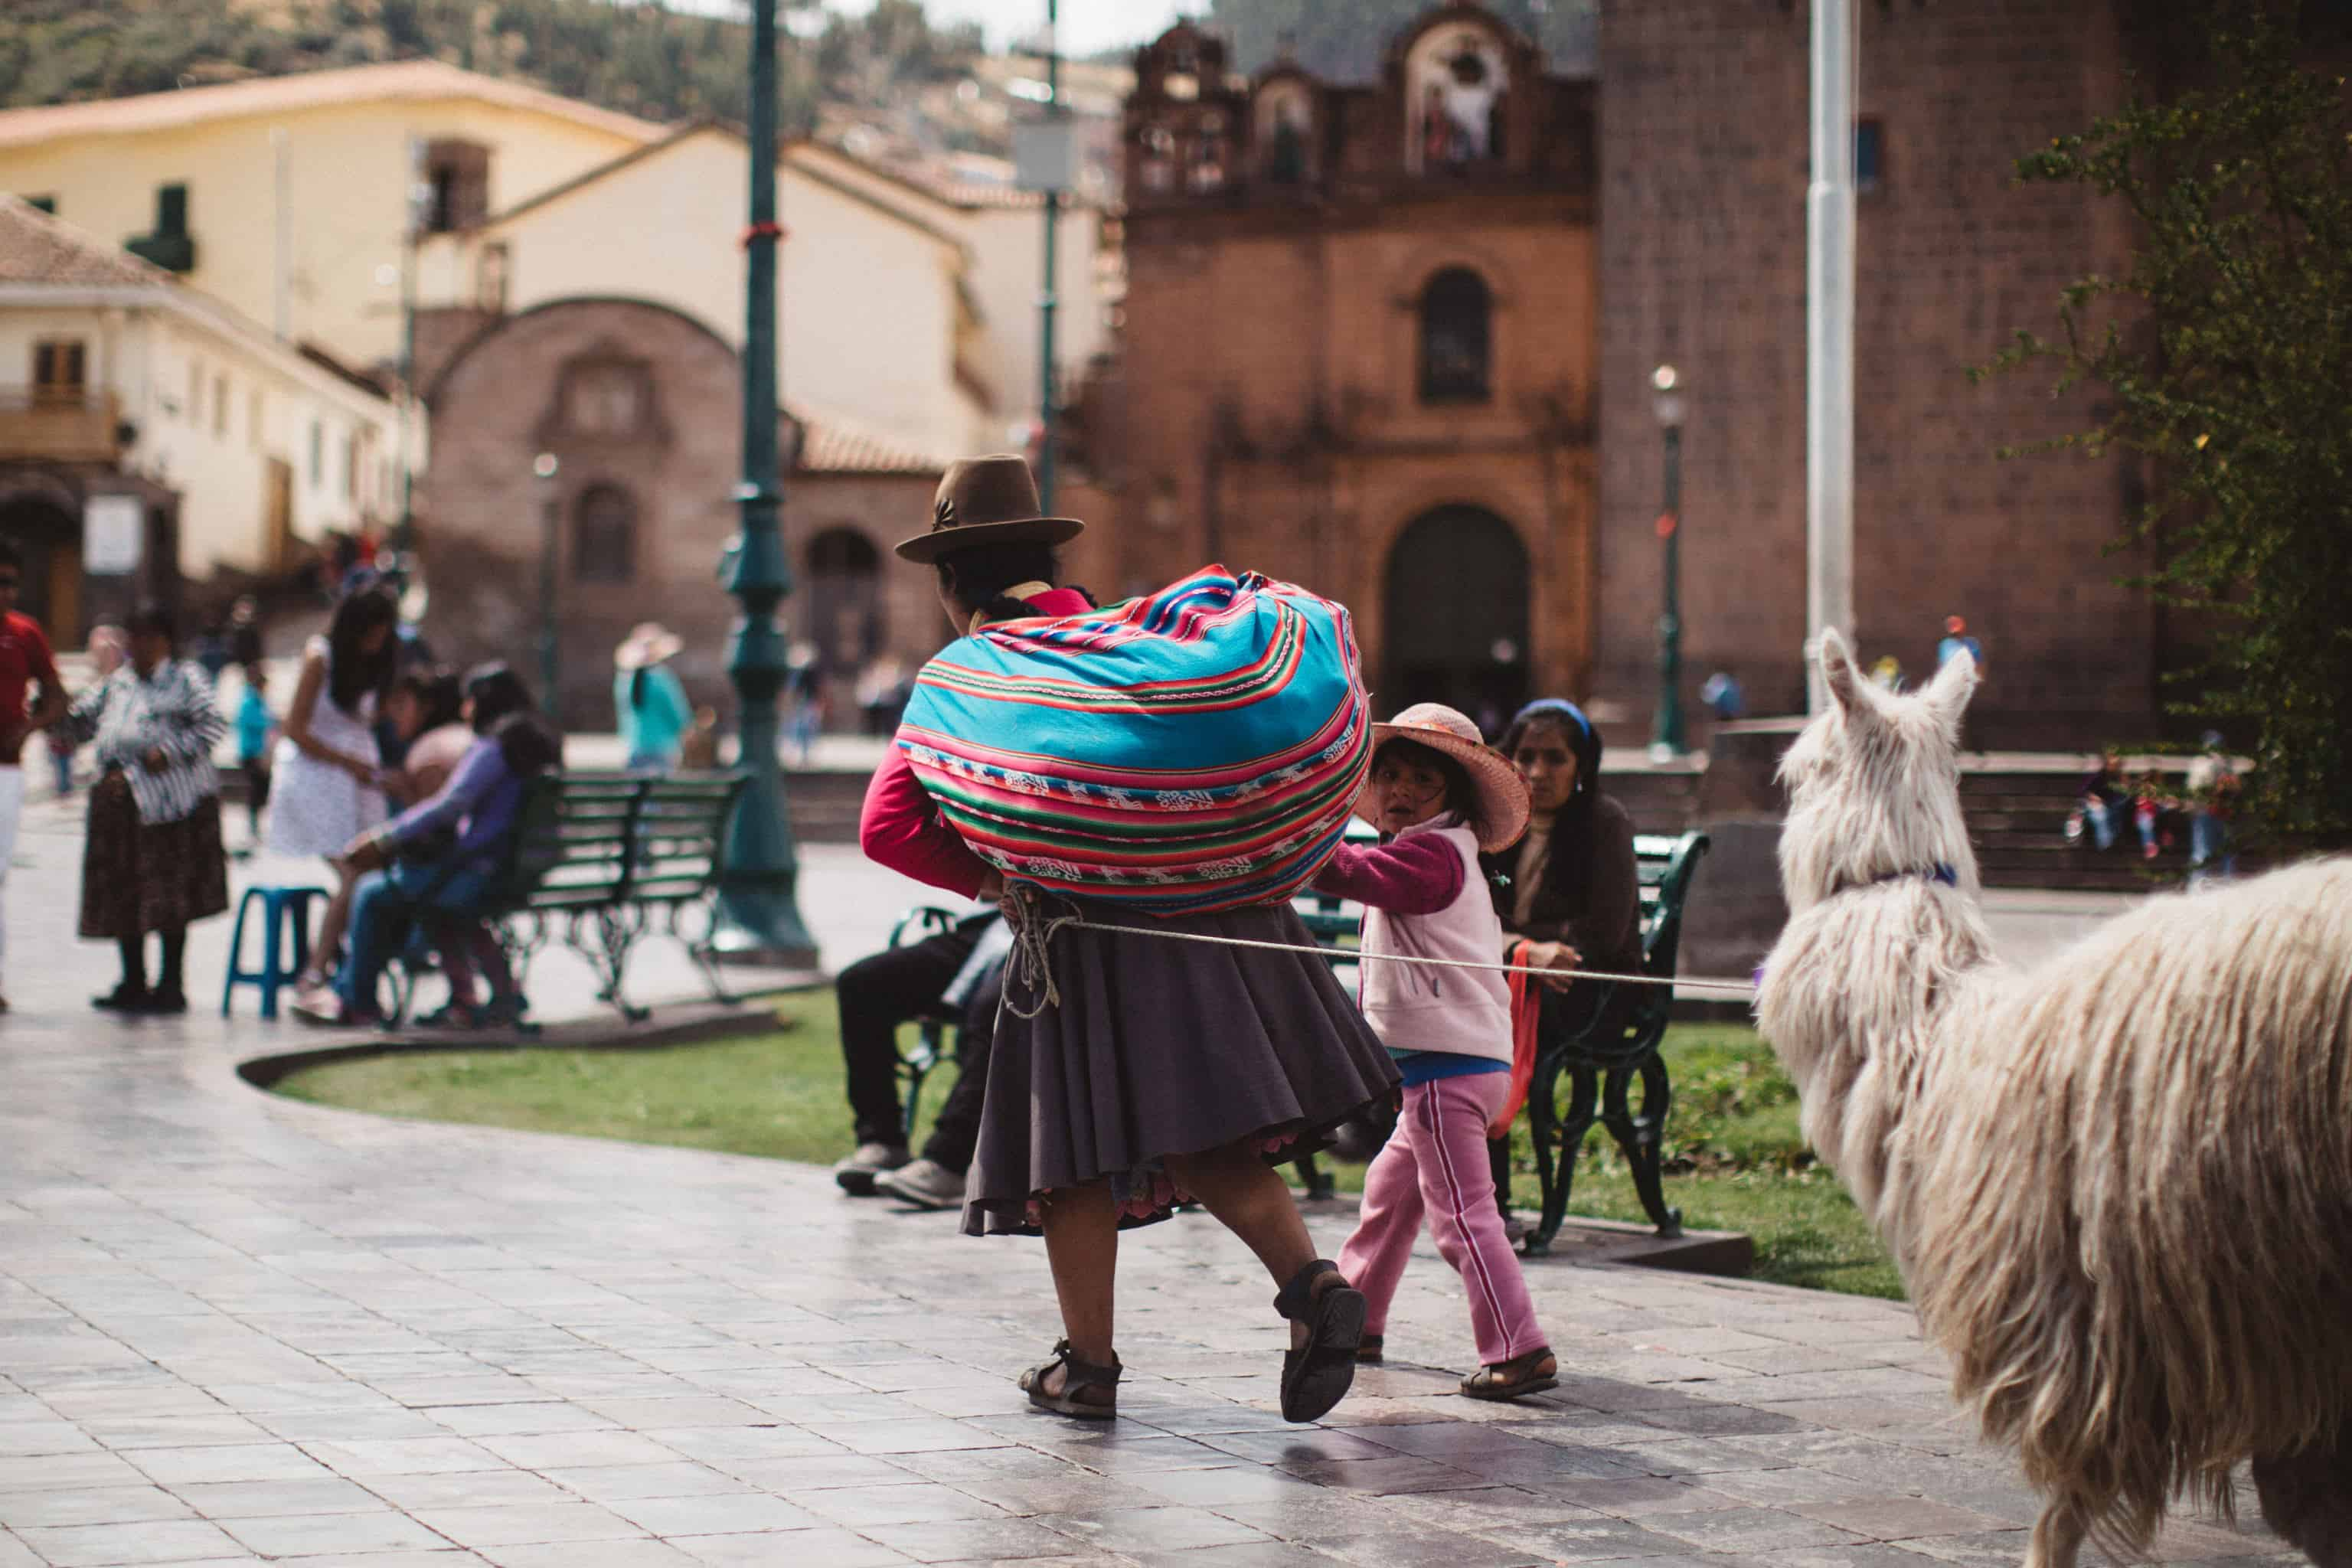 7 Overlooked Items You Will Need in Peru